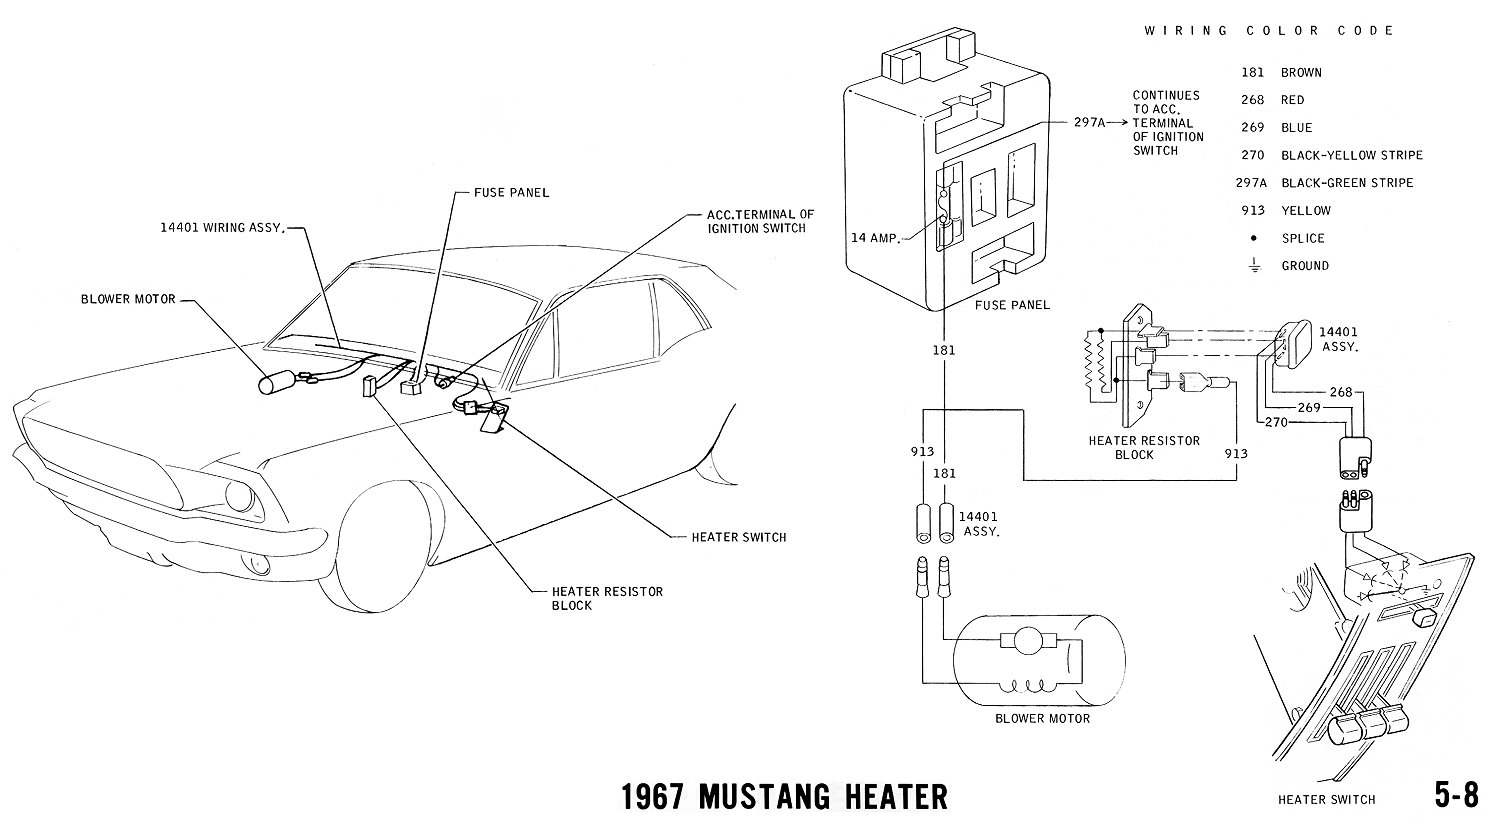 67heater 1967 mustang wiring and vacuum diagrams average joe restoration ammeter wiring schematic at mifinder.co